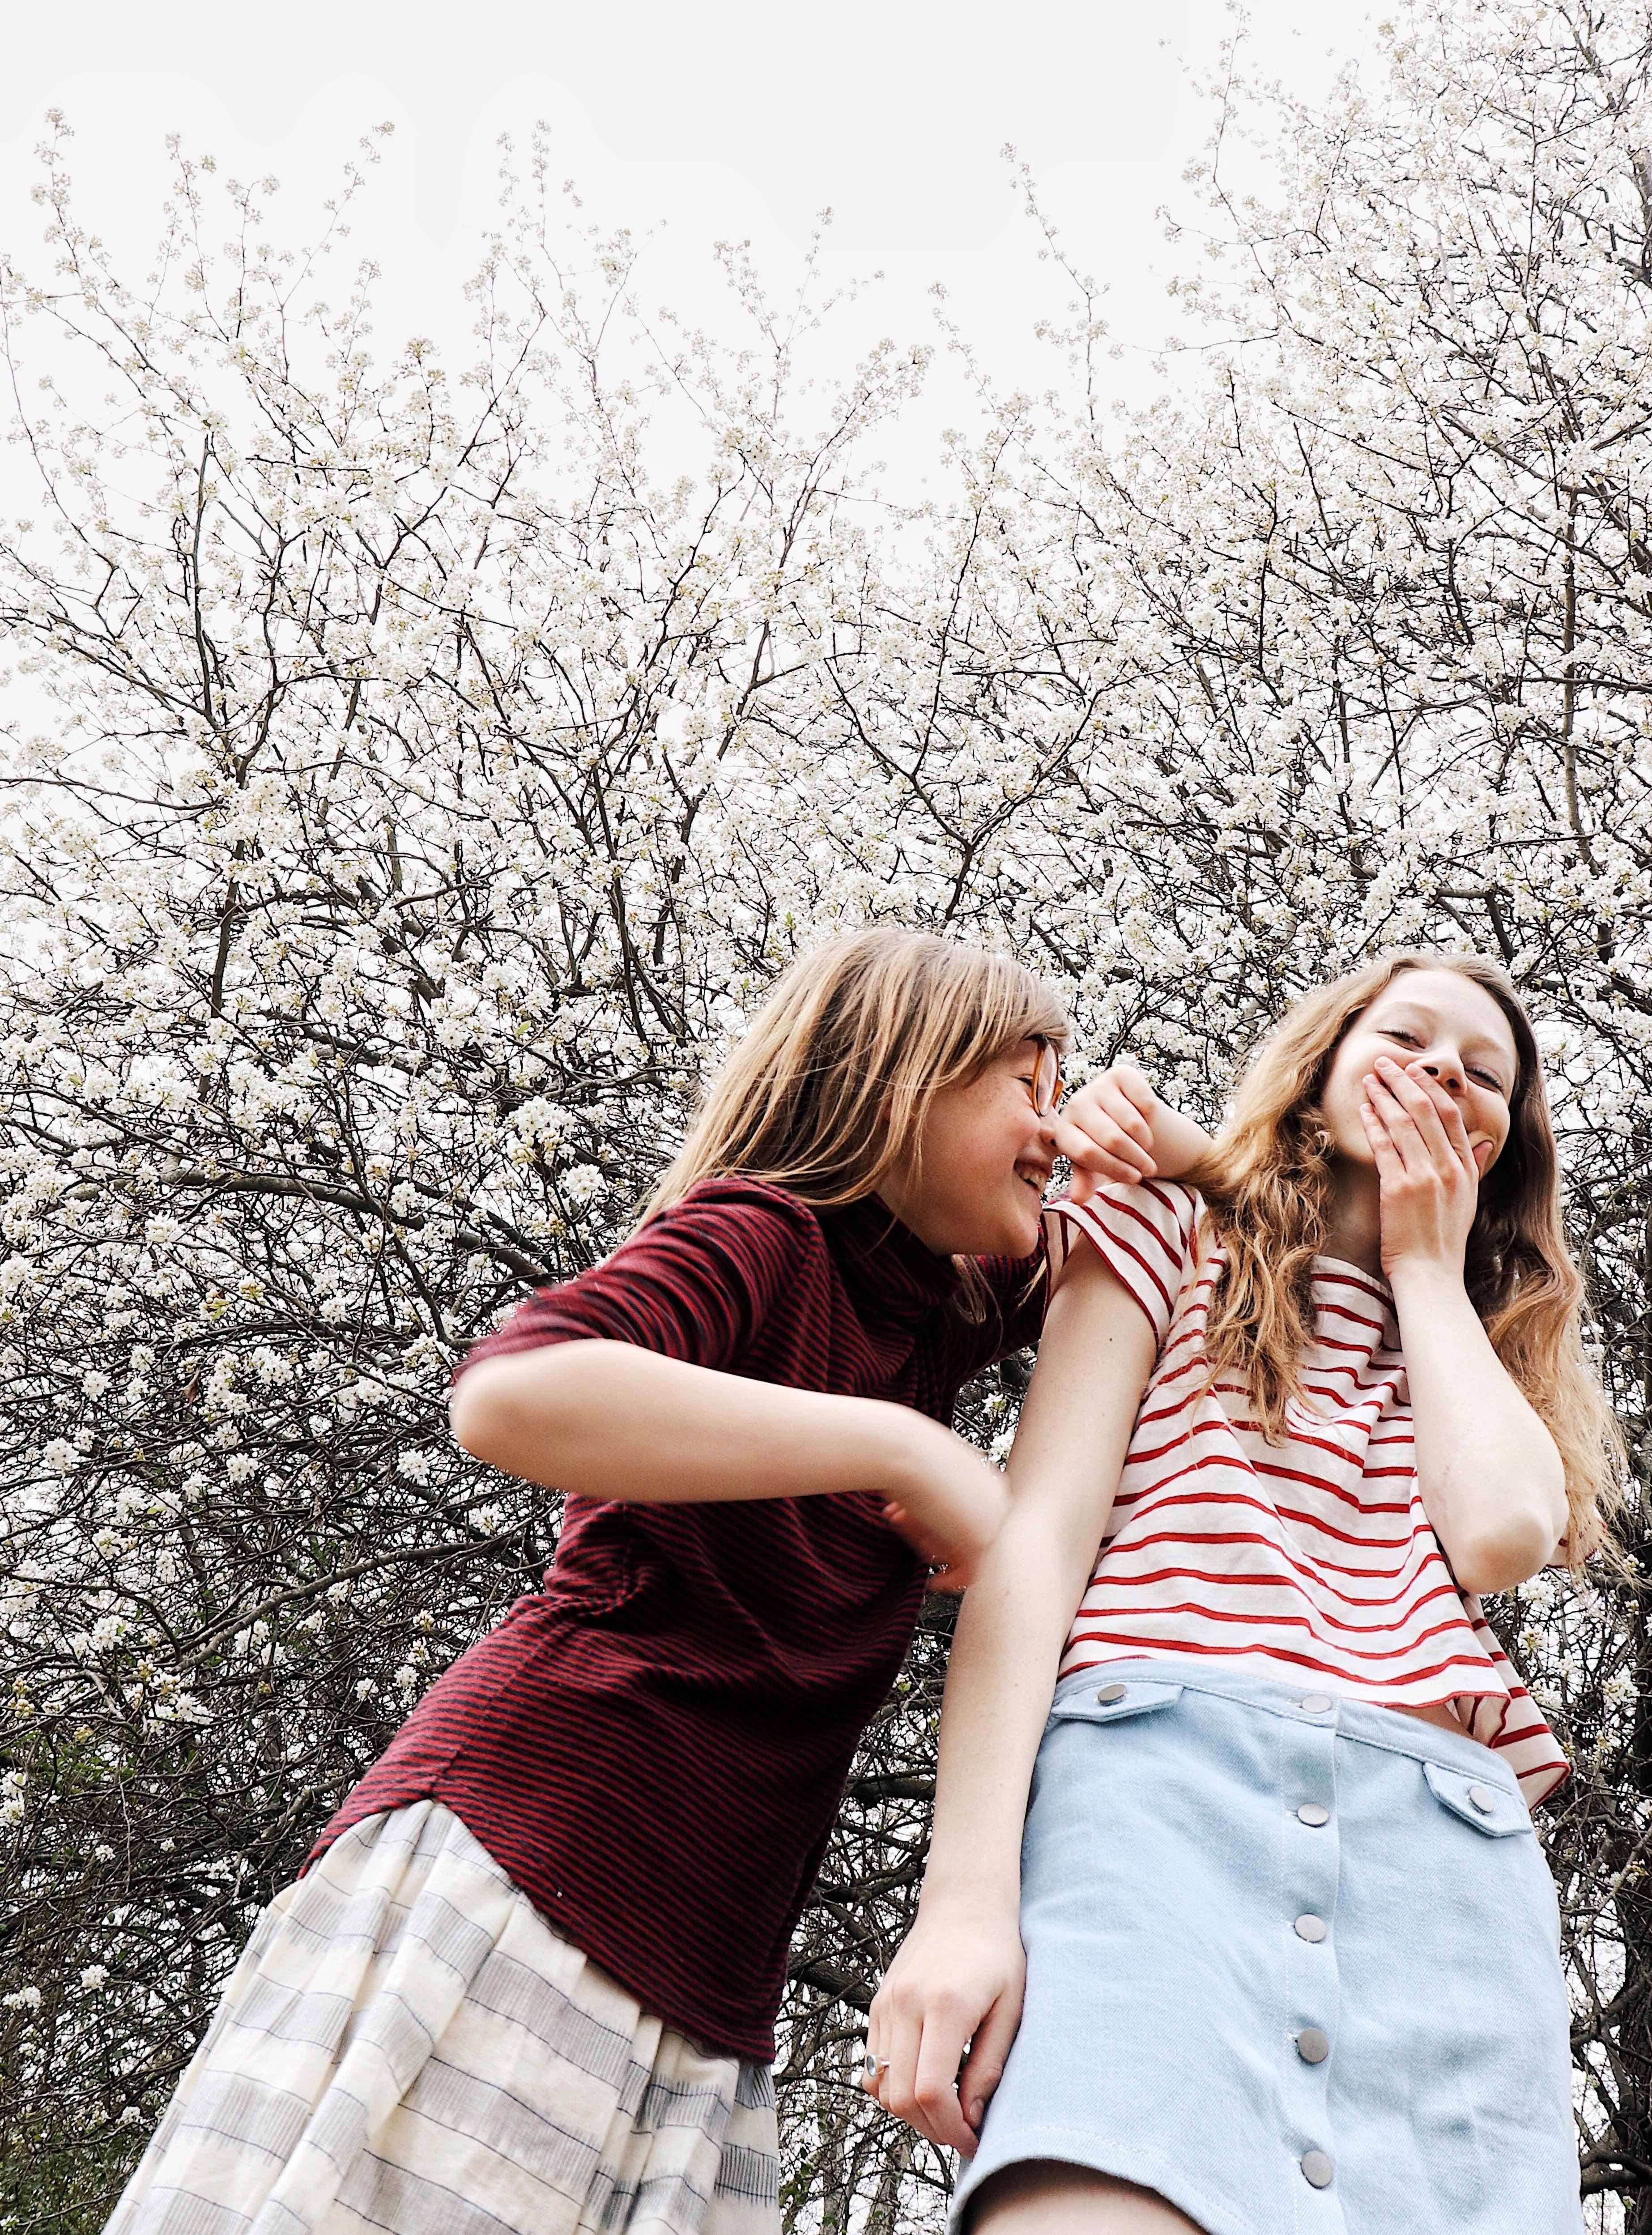 Photo of two young girls laughing and being silly